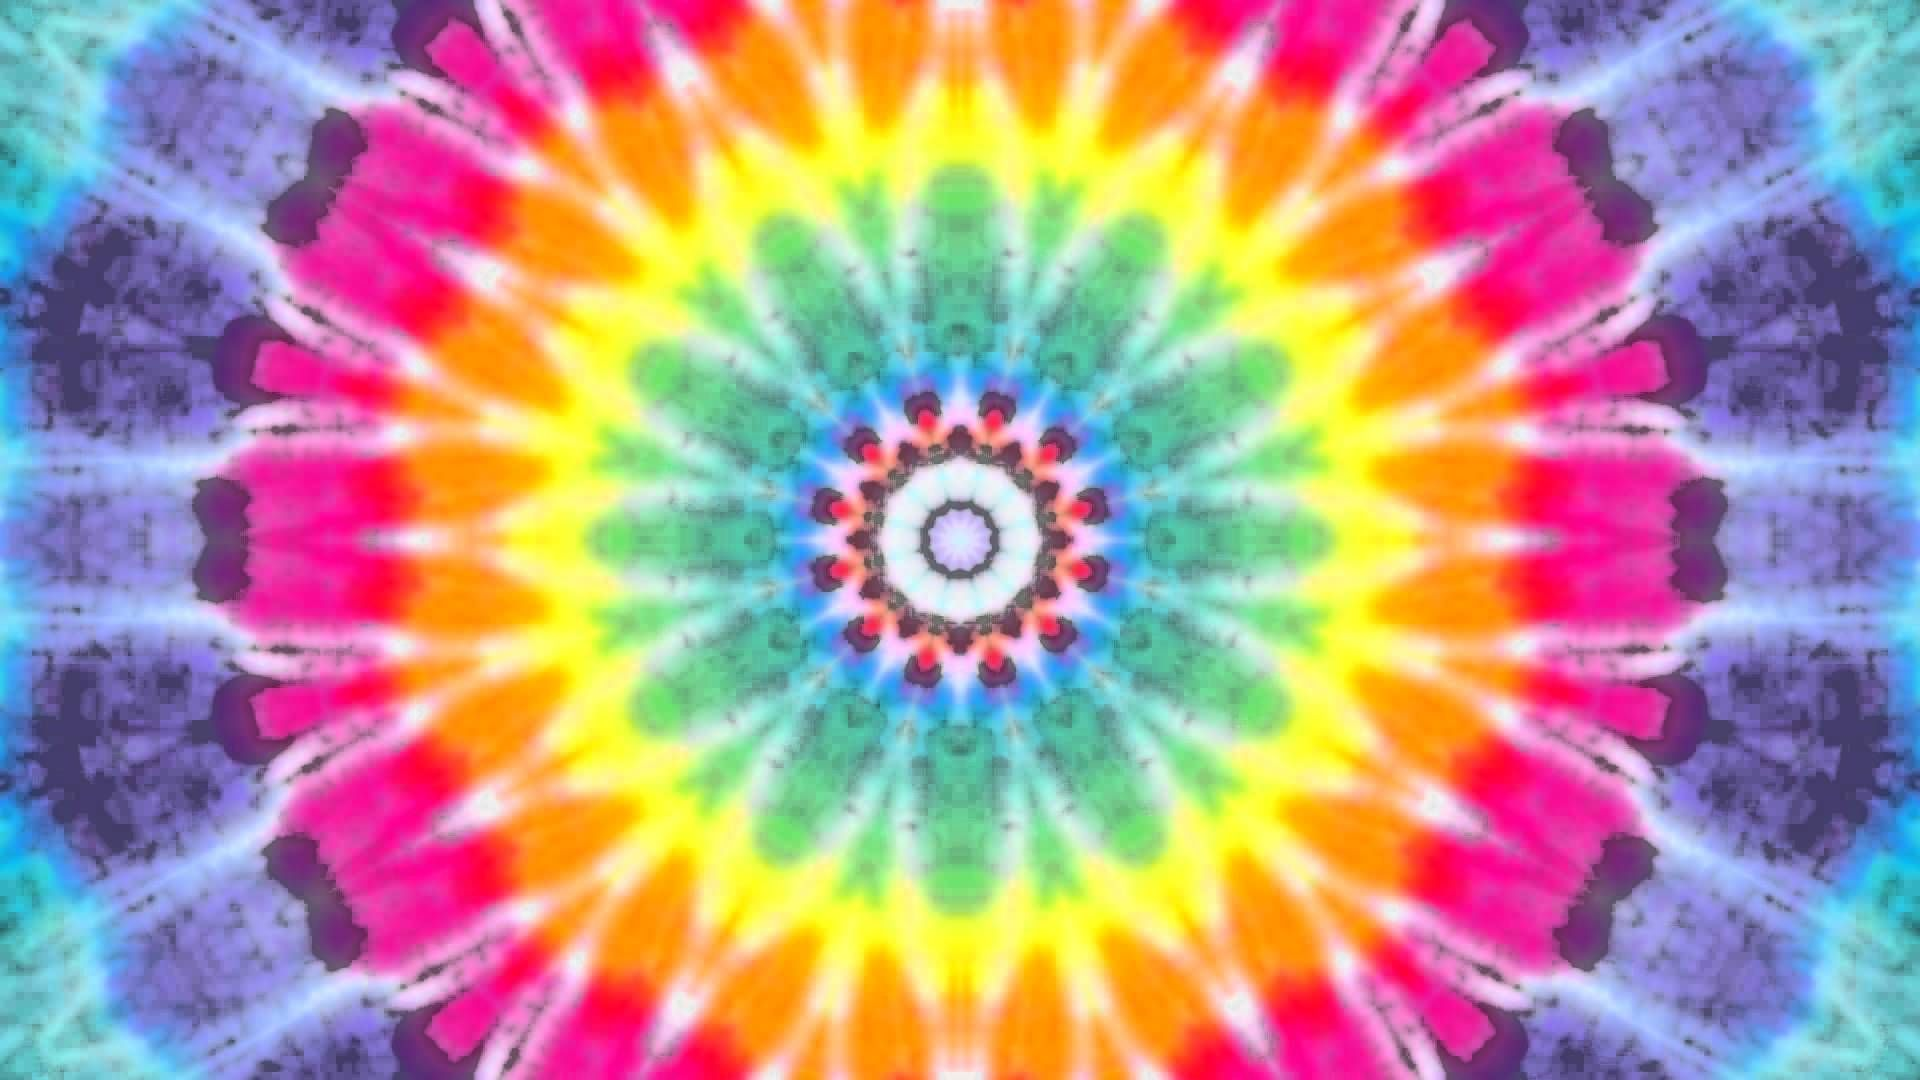 Free Tie Dye Wallpaper High Resolution Wallpapers Backgrounds Images Art Photos Tie Dye Wallpaper Tie Dye Background Tye Dye Wallpaper